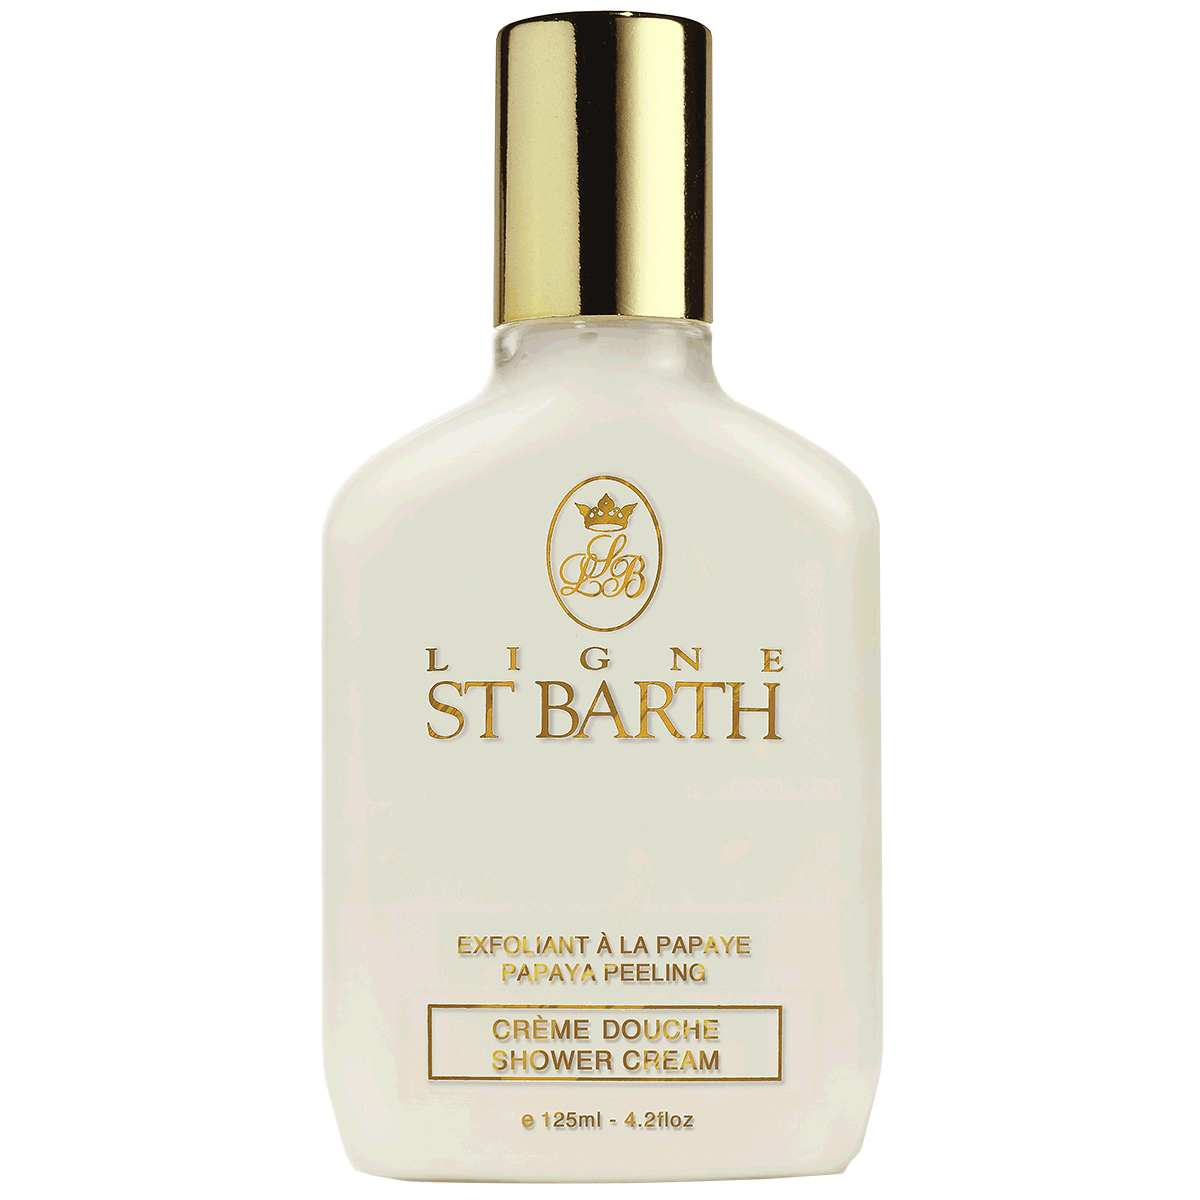 Крем-пилинг для душа St Barth Creme Douche Shower Cream Papaya Peeling 125мл